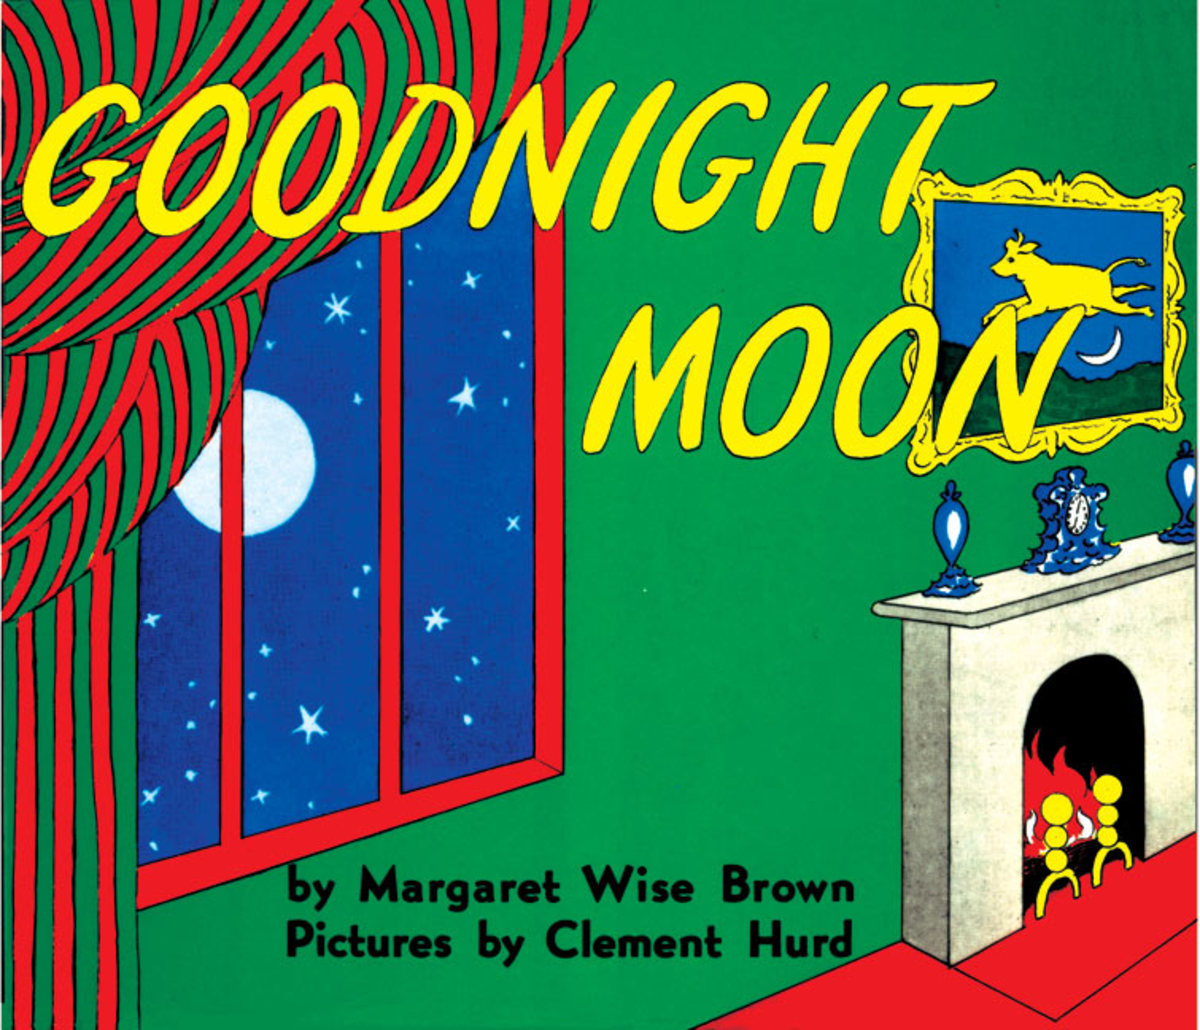 This classic book is written by Margaret Wise Brown. She spent her first royalty check as a writer on a flower cart full of flowers and once was yelled at by a Parisian hotel owner for bringing orange trees and live birds into her room.